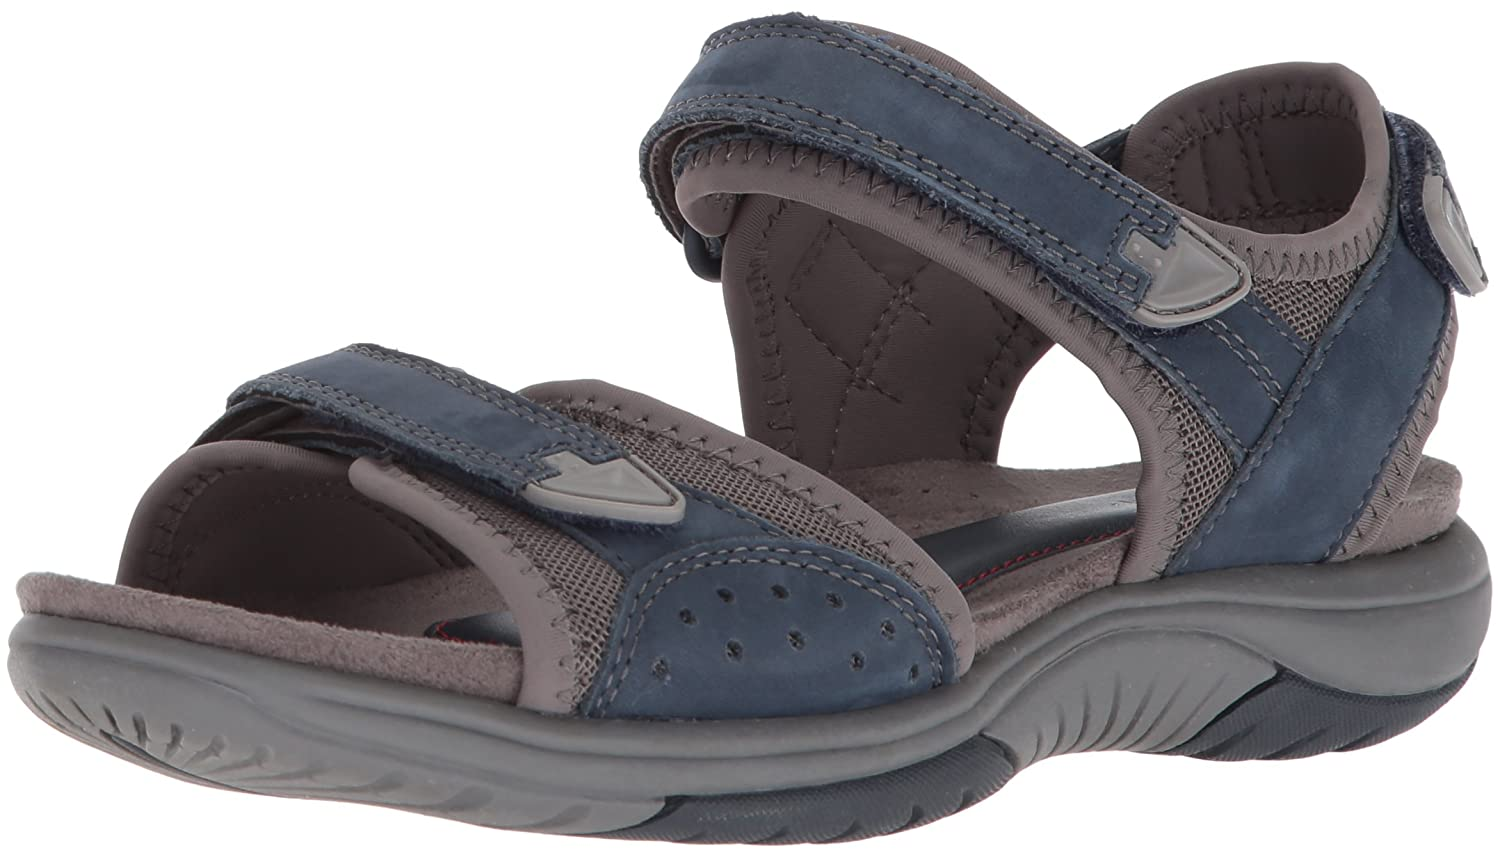 Rockport Women's Franklin Three Strap Sport Sandal B073ZT4J26 9.5 W US|Blue